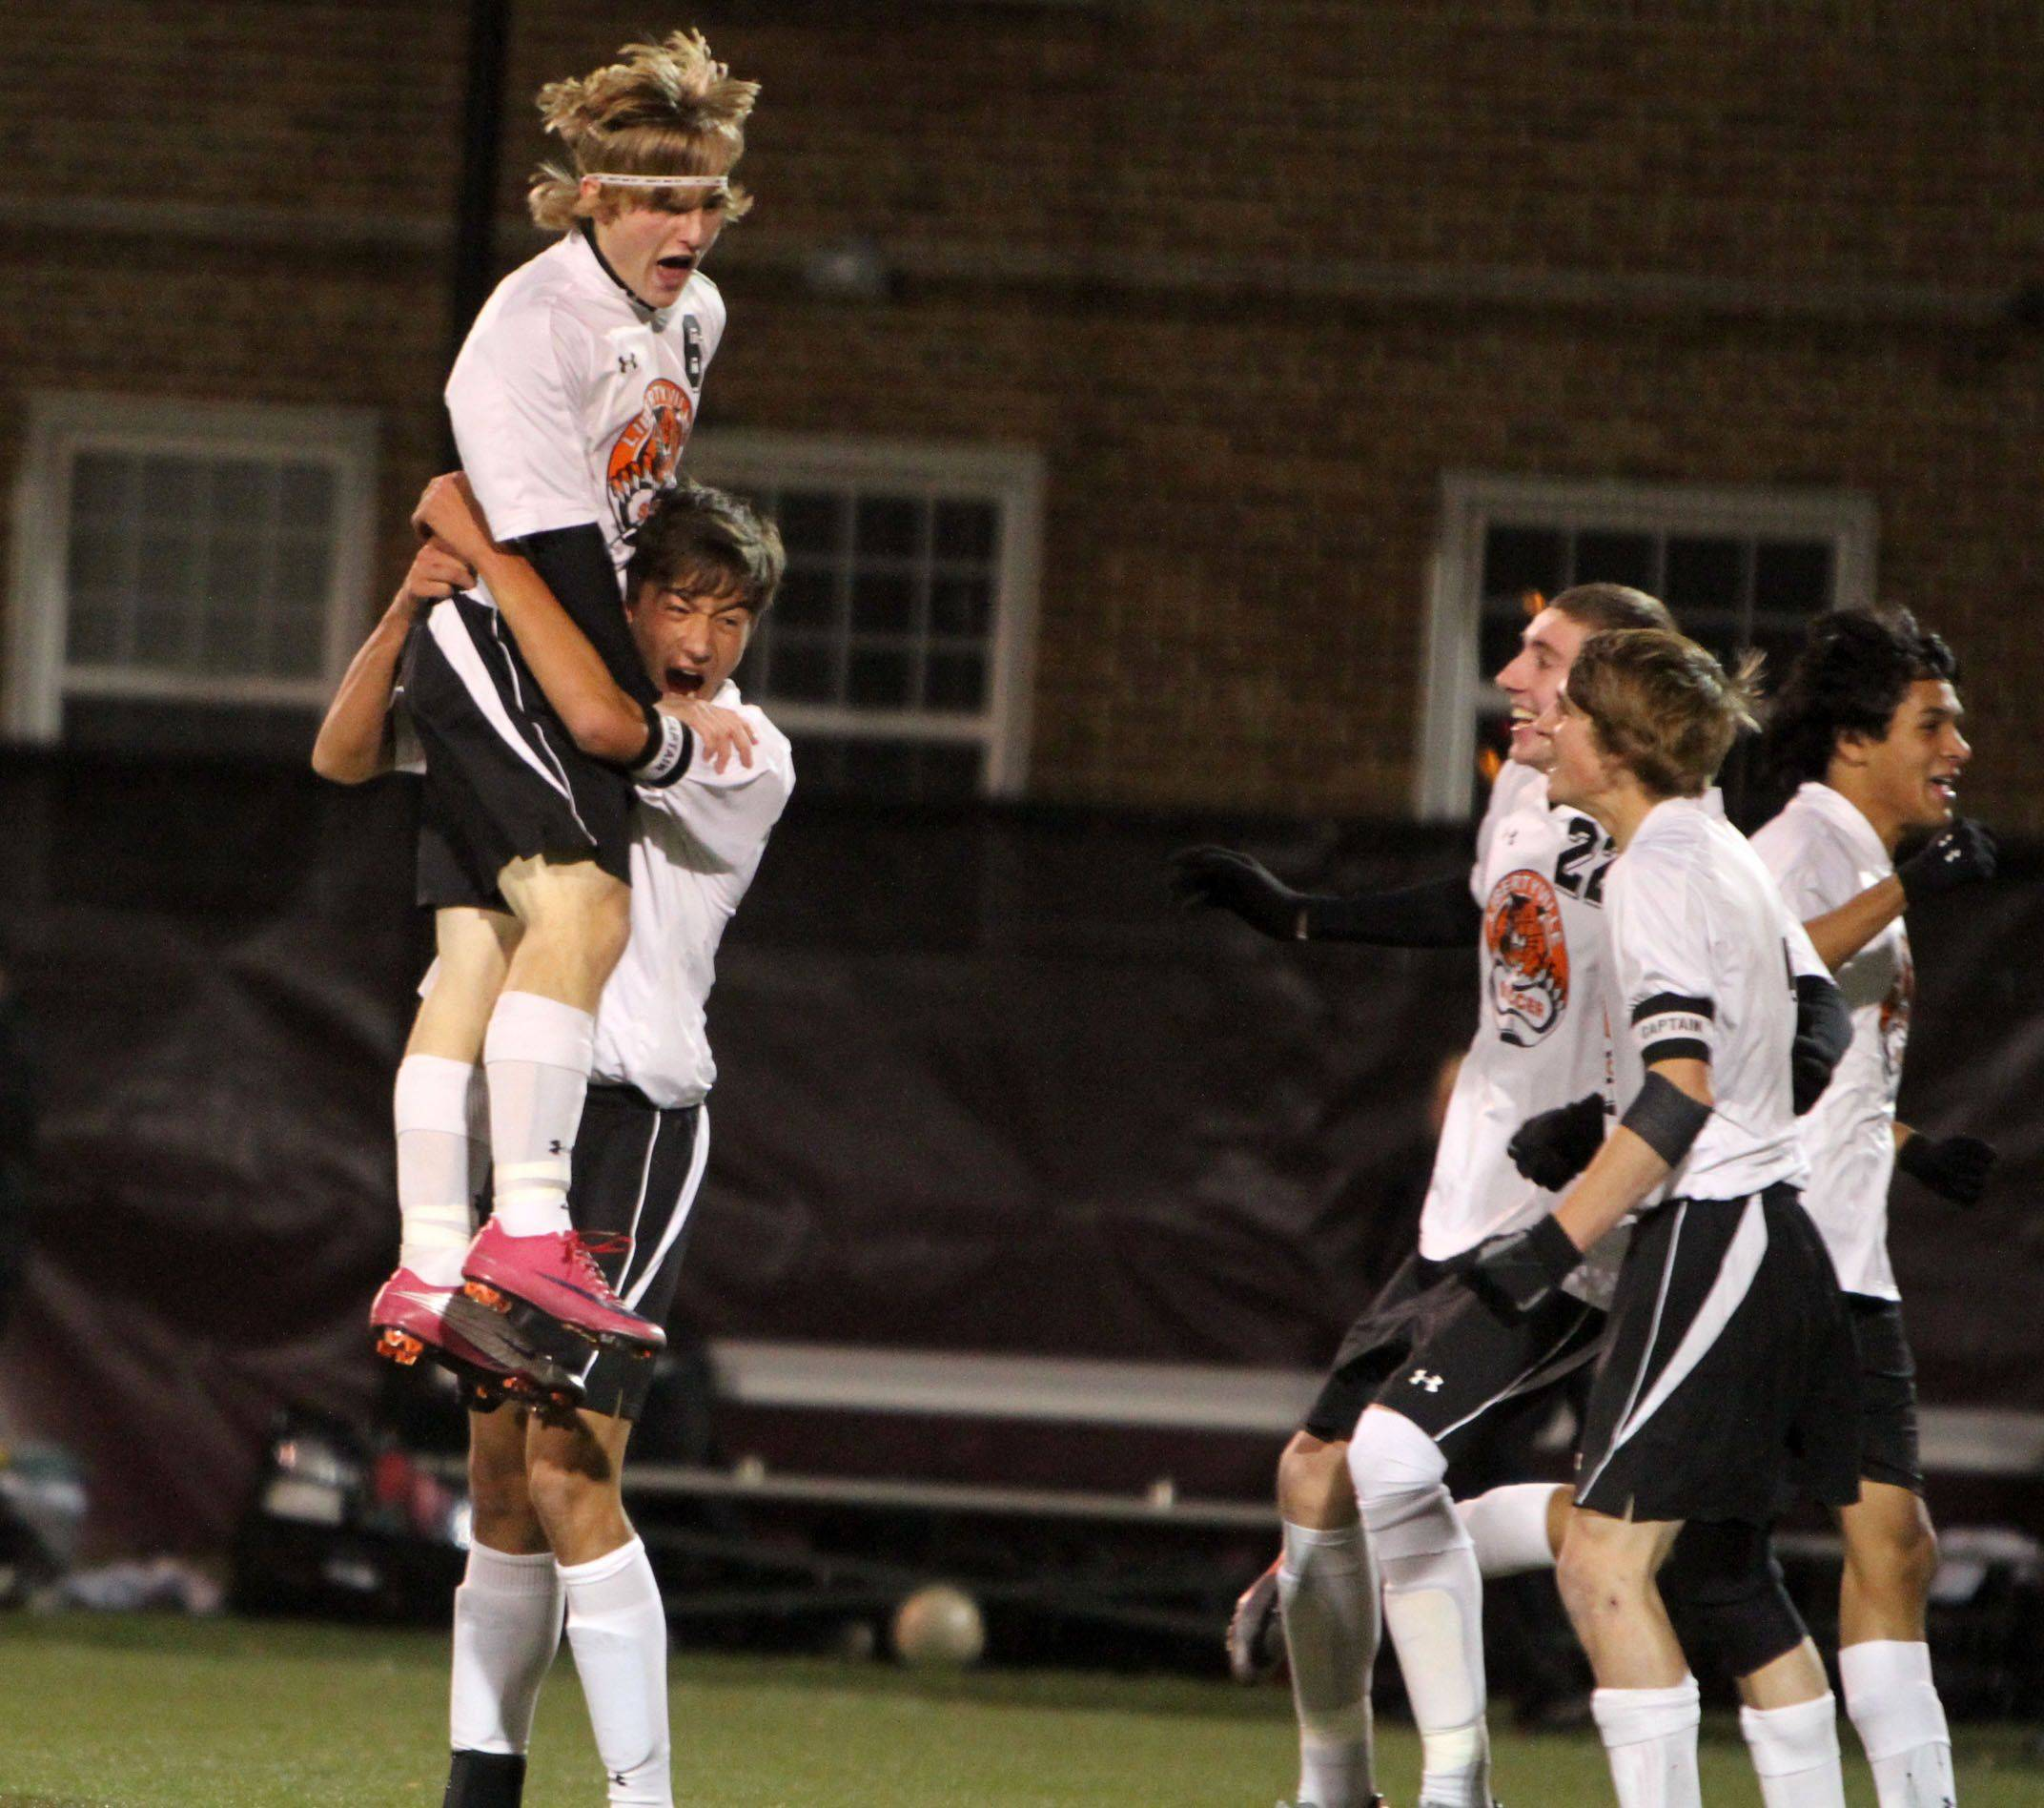 Libertyville's Landon Eyre lifts teammate Joey Ruppert to celebrate a goal during Tuesday's Class 3A super-sectional match at Loyola Soccer Park in Chicago against Maine West.